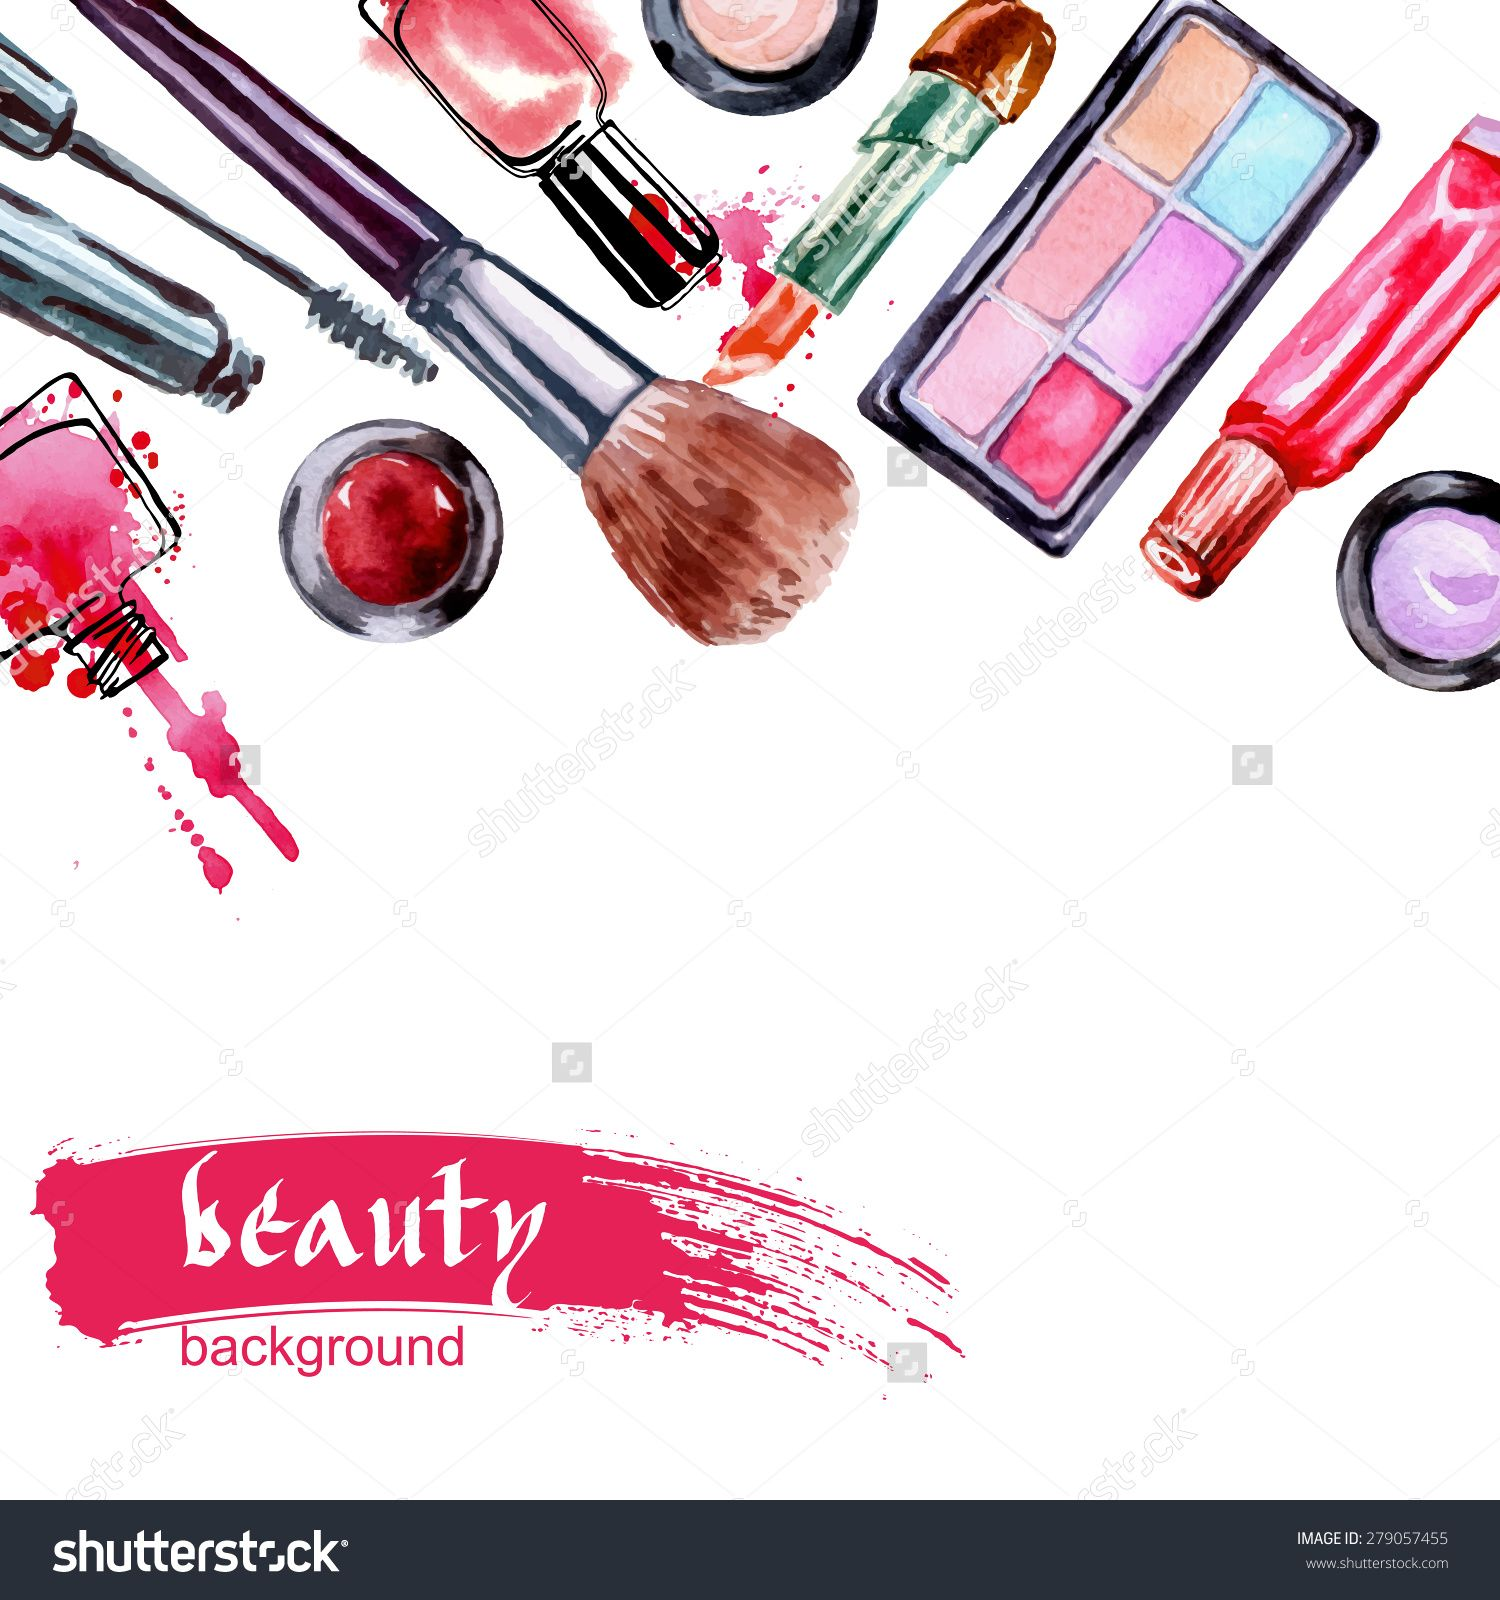 Pin By Madeline Martz On Jewerly Makeup Wallpapers Makeup Illustration Makeup Artist Logo